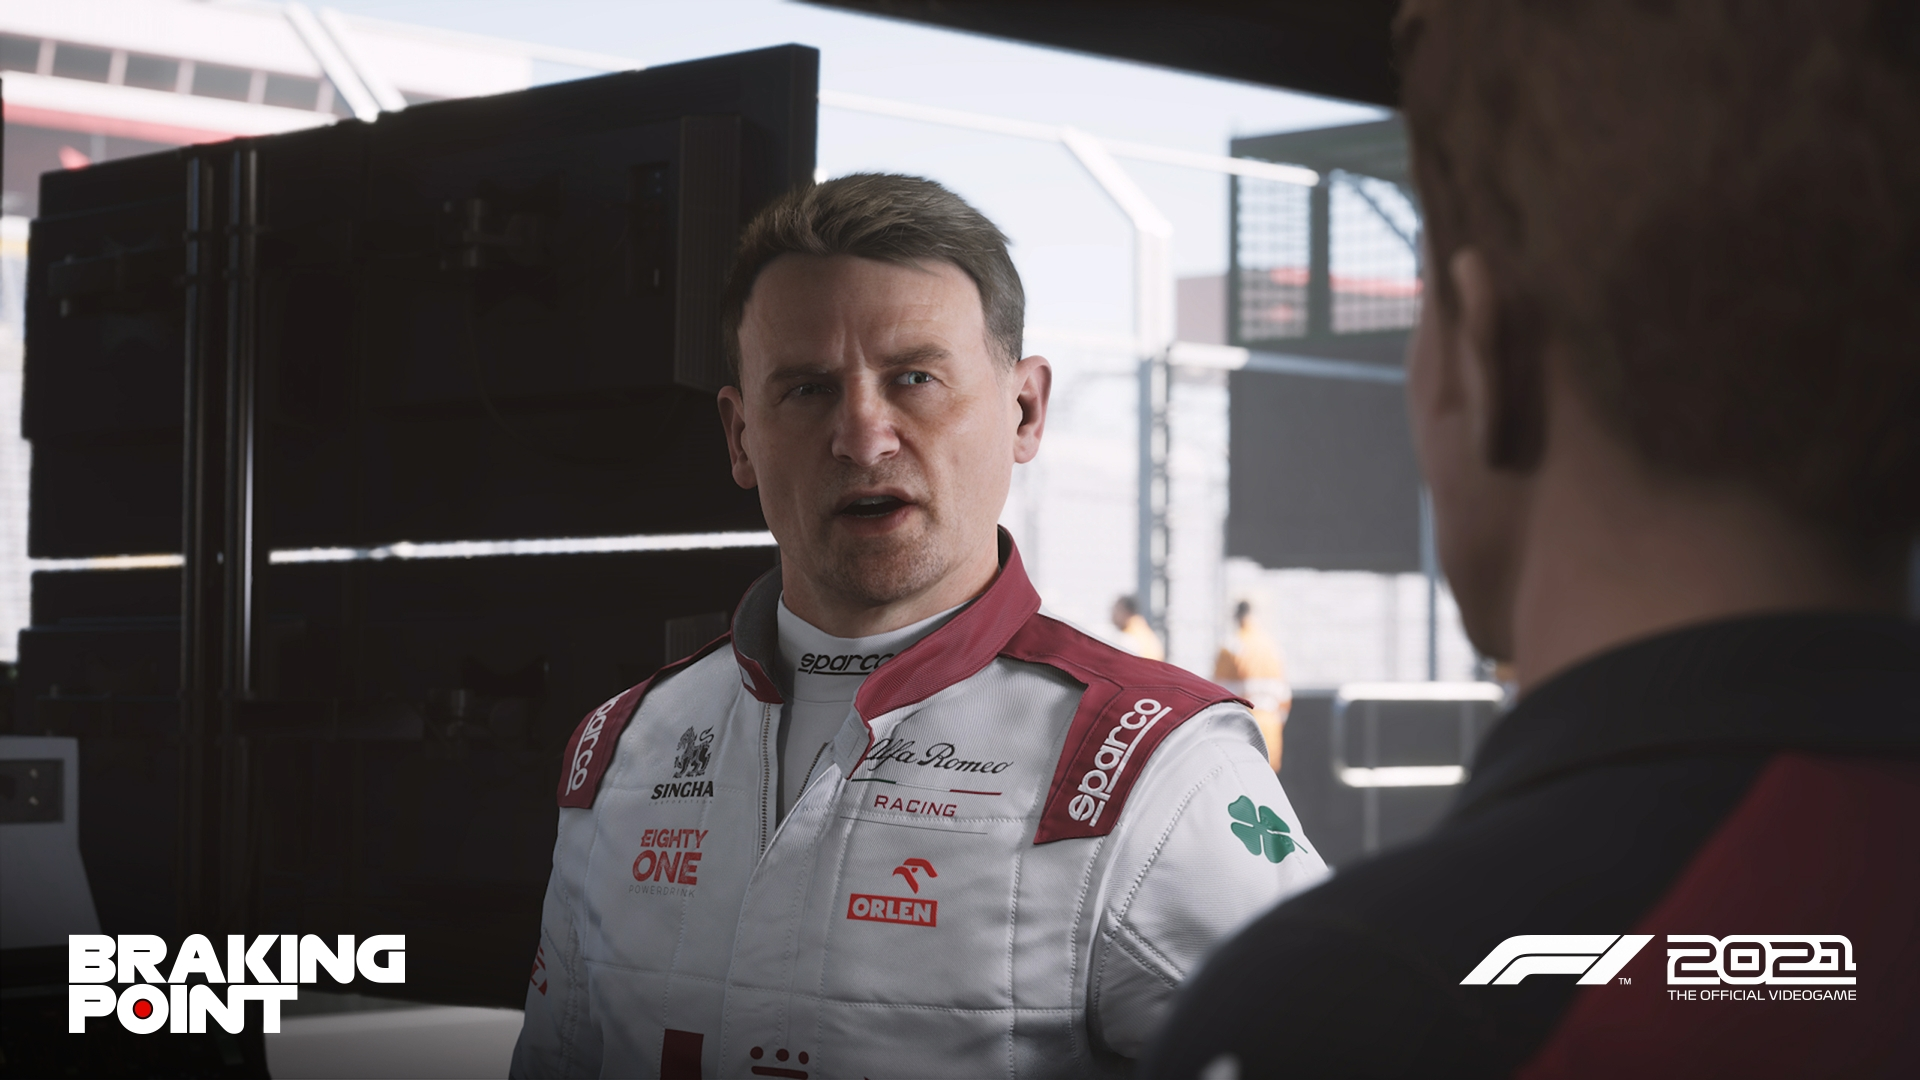 f1-2021-review-03-braking-point-part-2